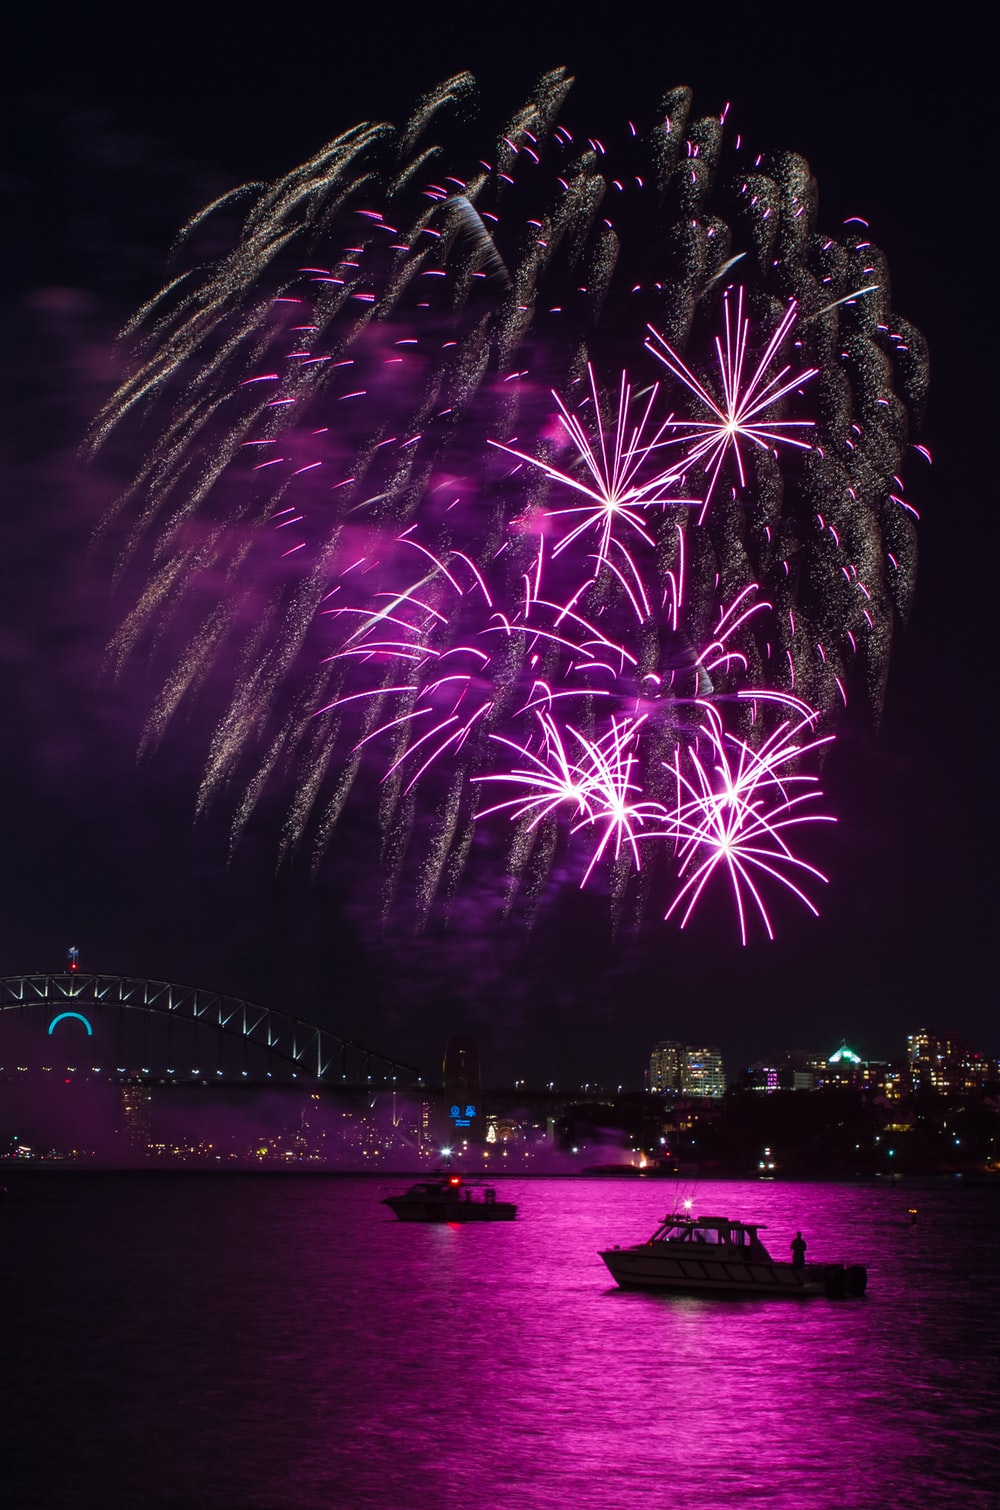 two boats on sea under fireworks display